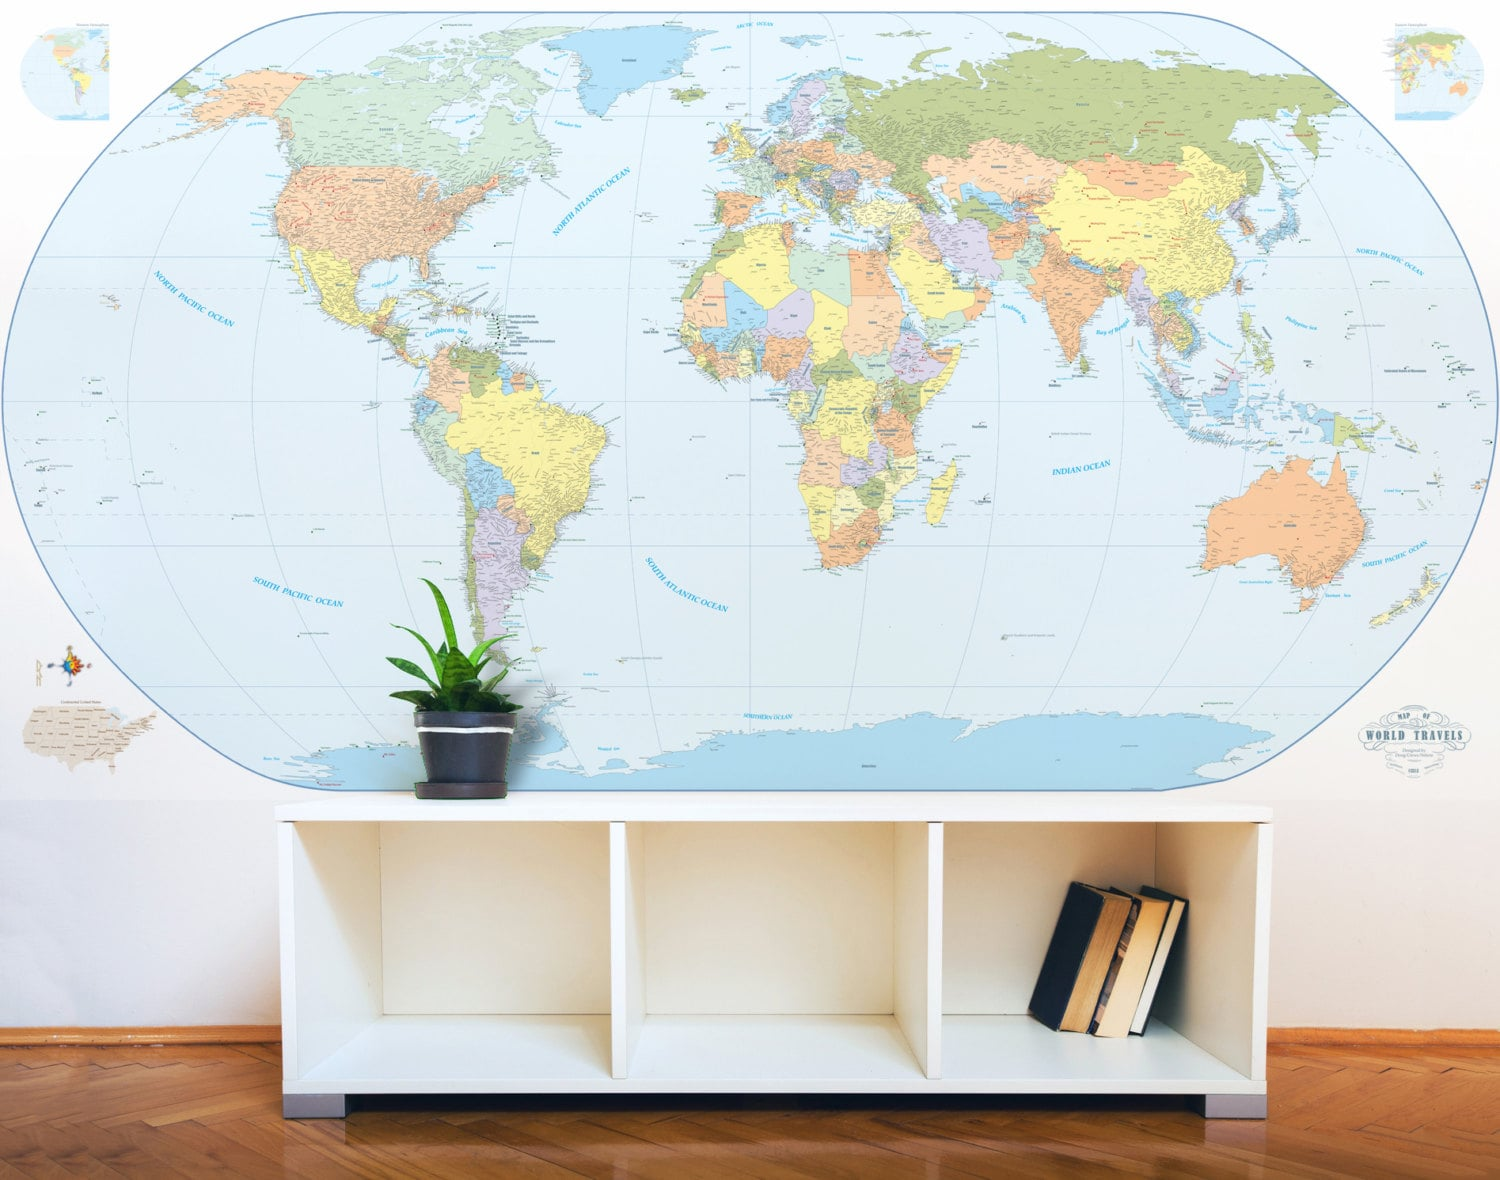 Giant world map mural stylish and educational world map wall art giant world map mural stylish and educational world map wall art world map decal 48h x 90w with cities gumiabroncs Image collections